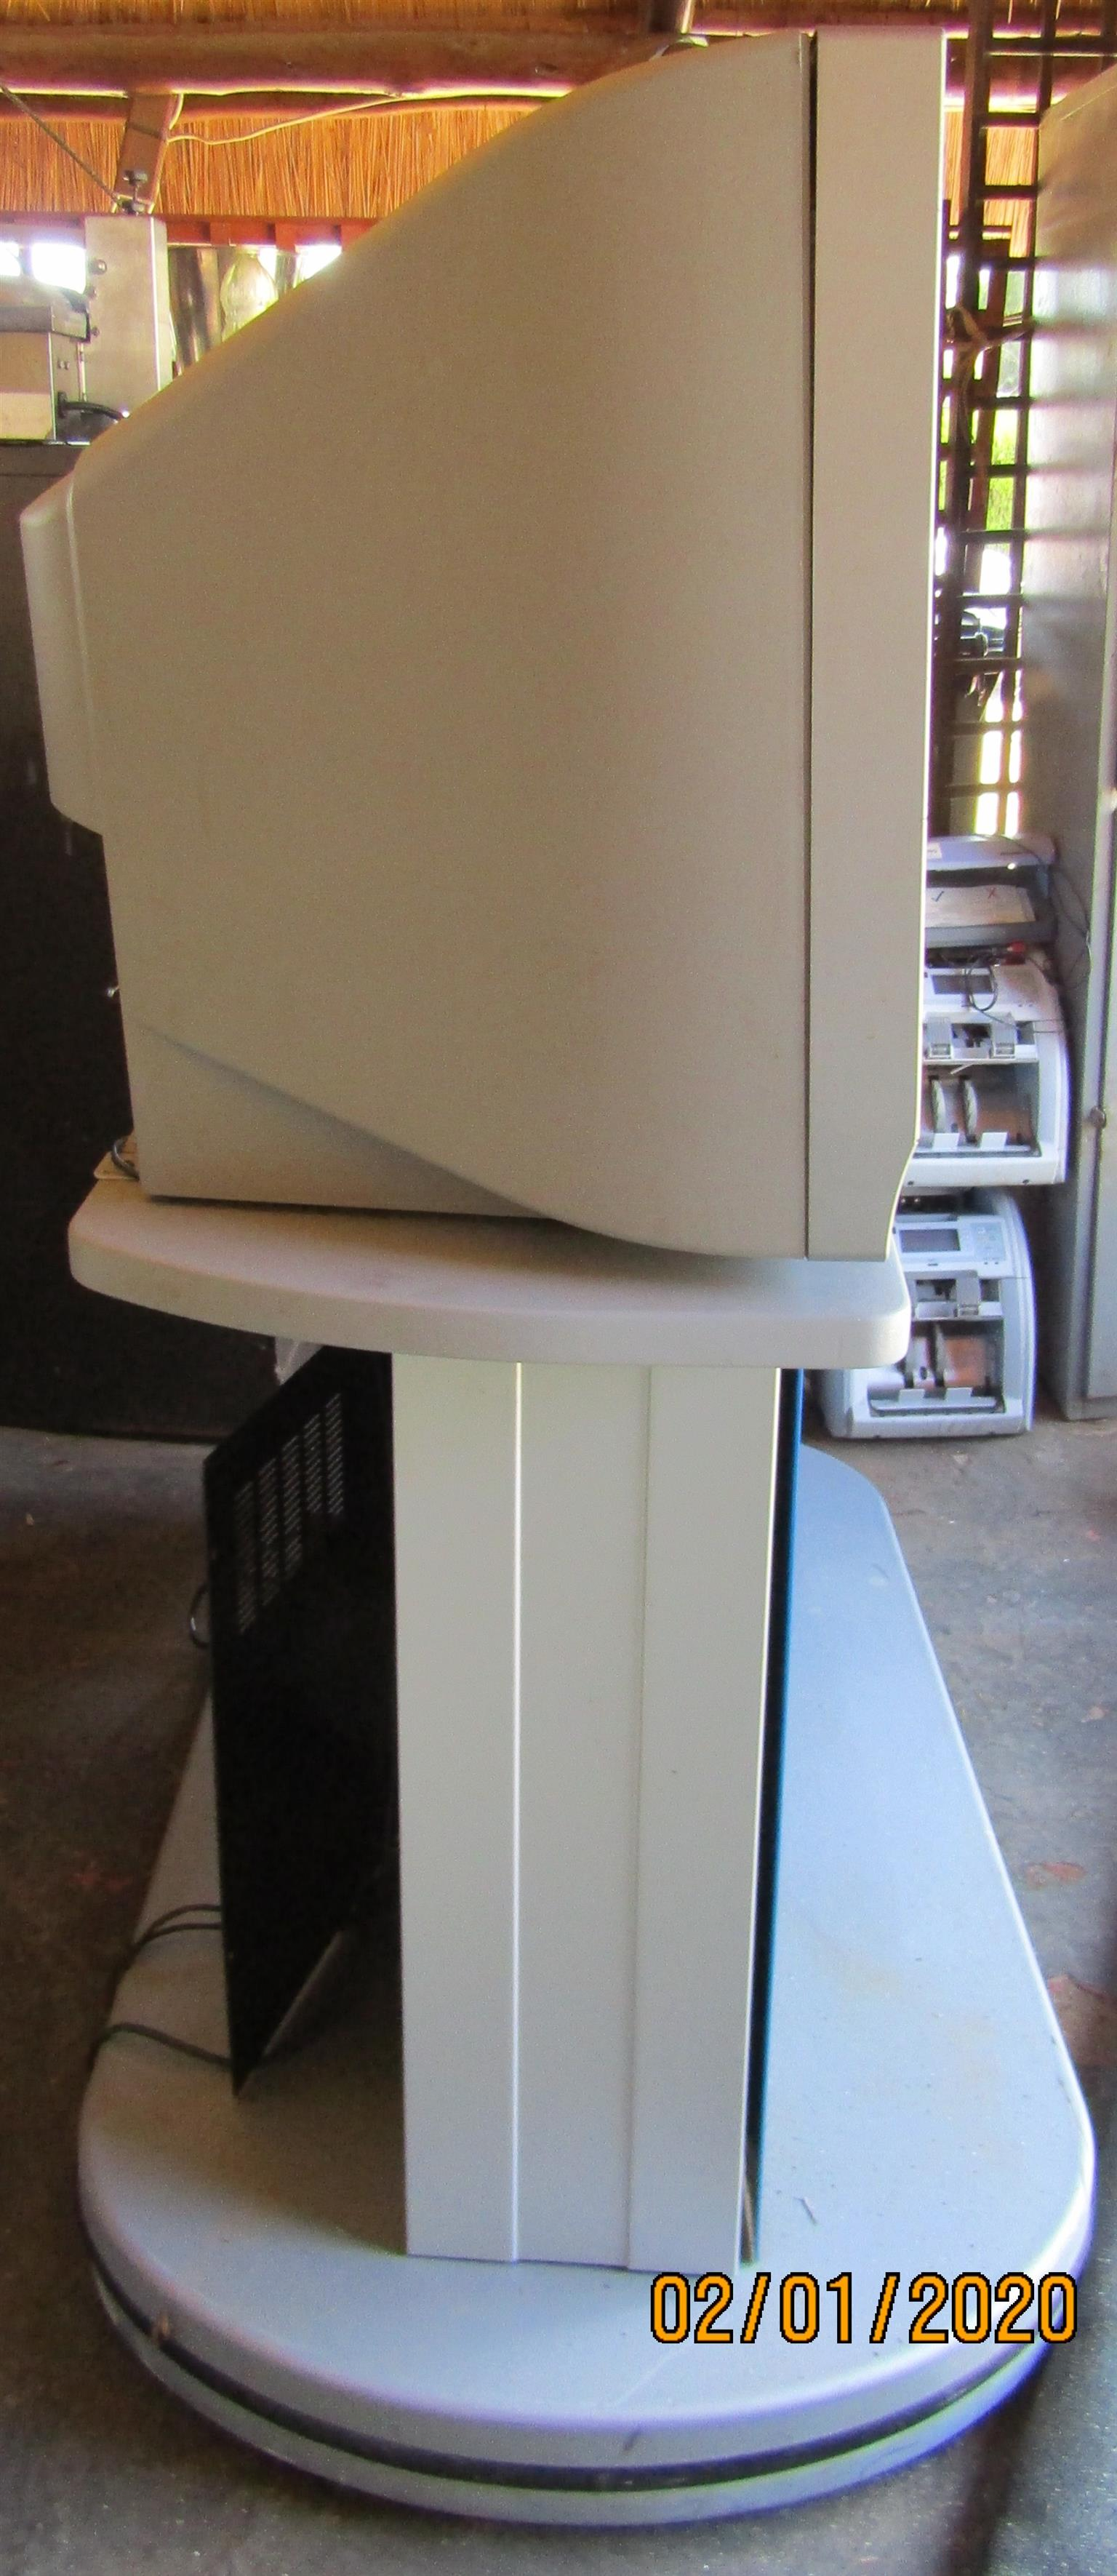 LOEWE Aventos 3772Z side-by-side CRT Monitors on Stand for Security or CCTV